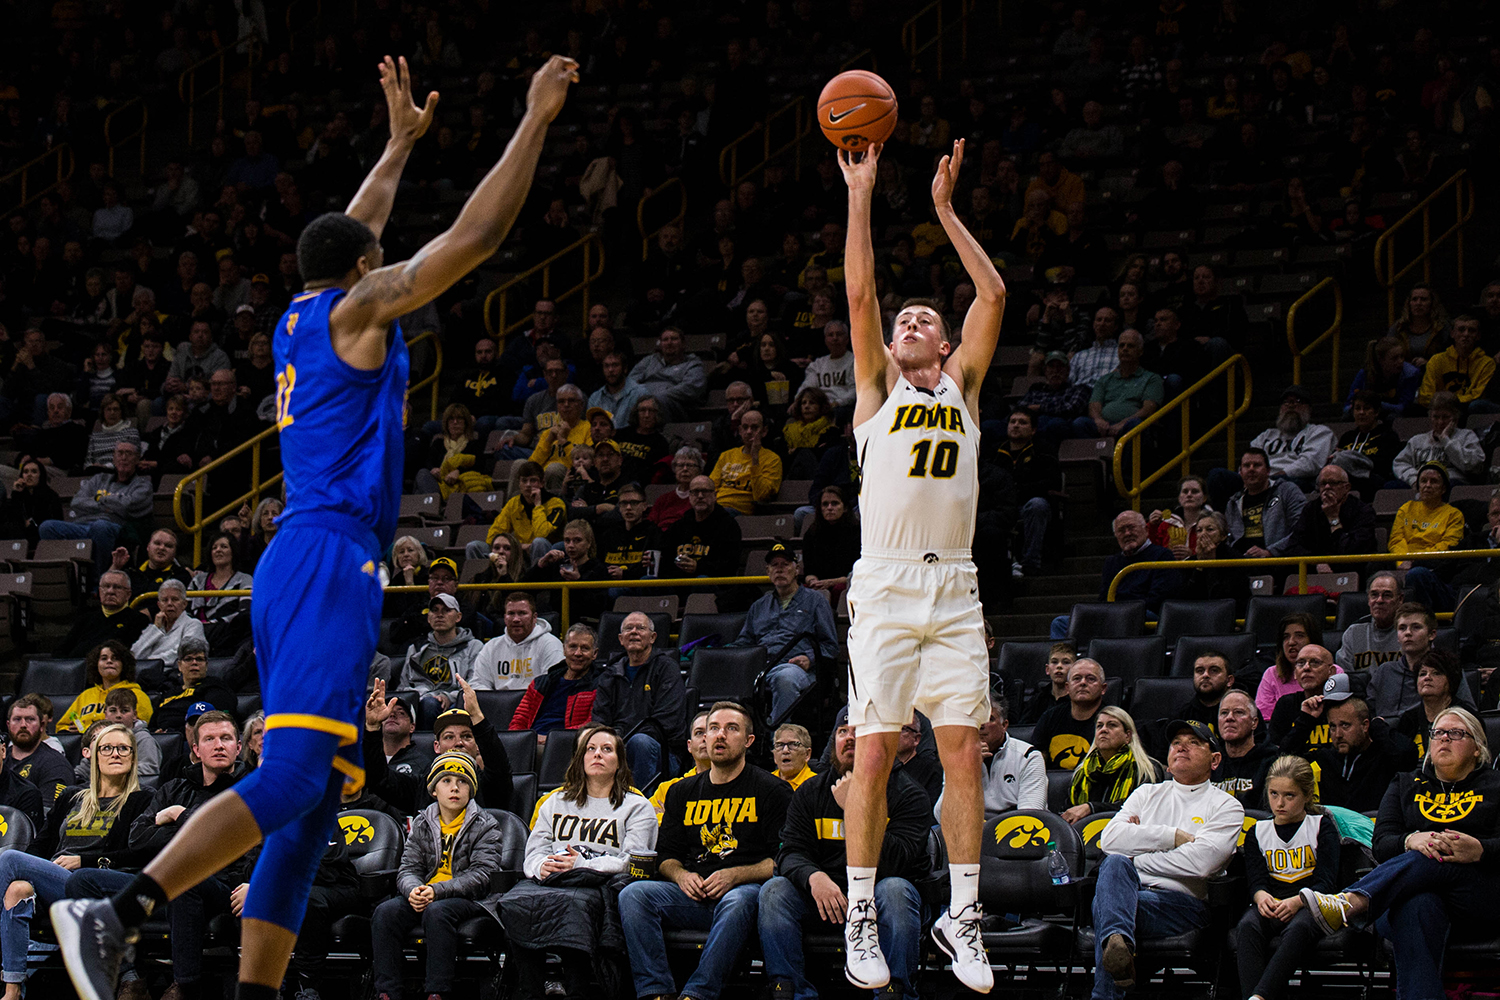 Iowa guard Joe Wieskamp shoots a three pointer during Iowa's game against UMKC at Carver-Hawkeye arena on November 8, 2018. The Hawkeyes defeated the Kangaroos 77-63.